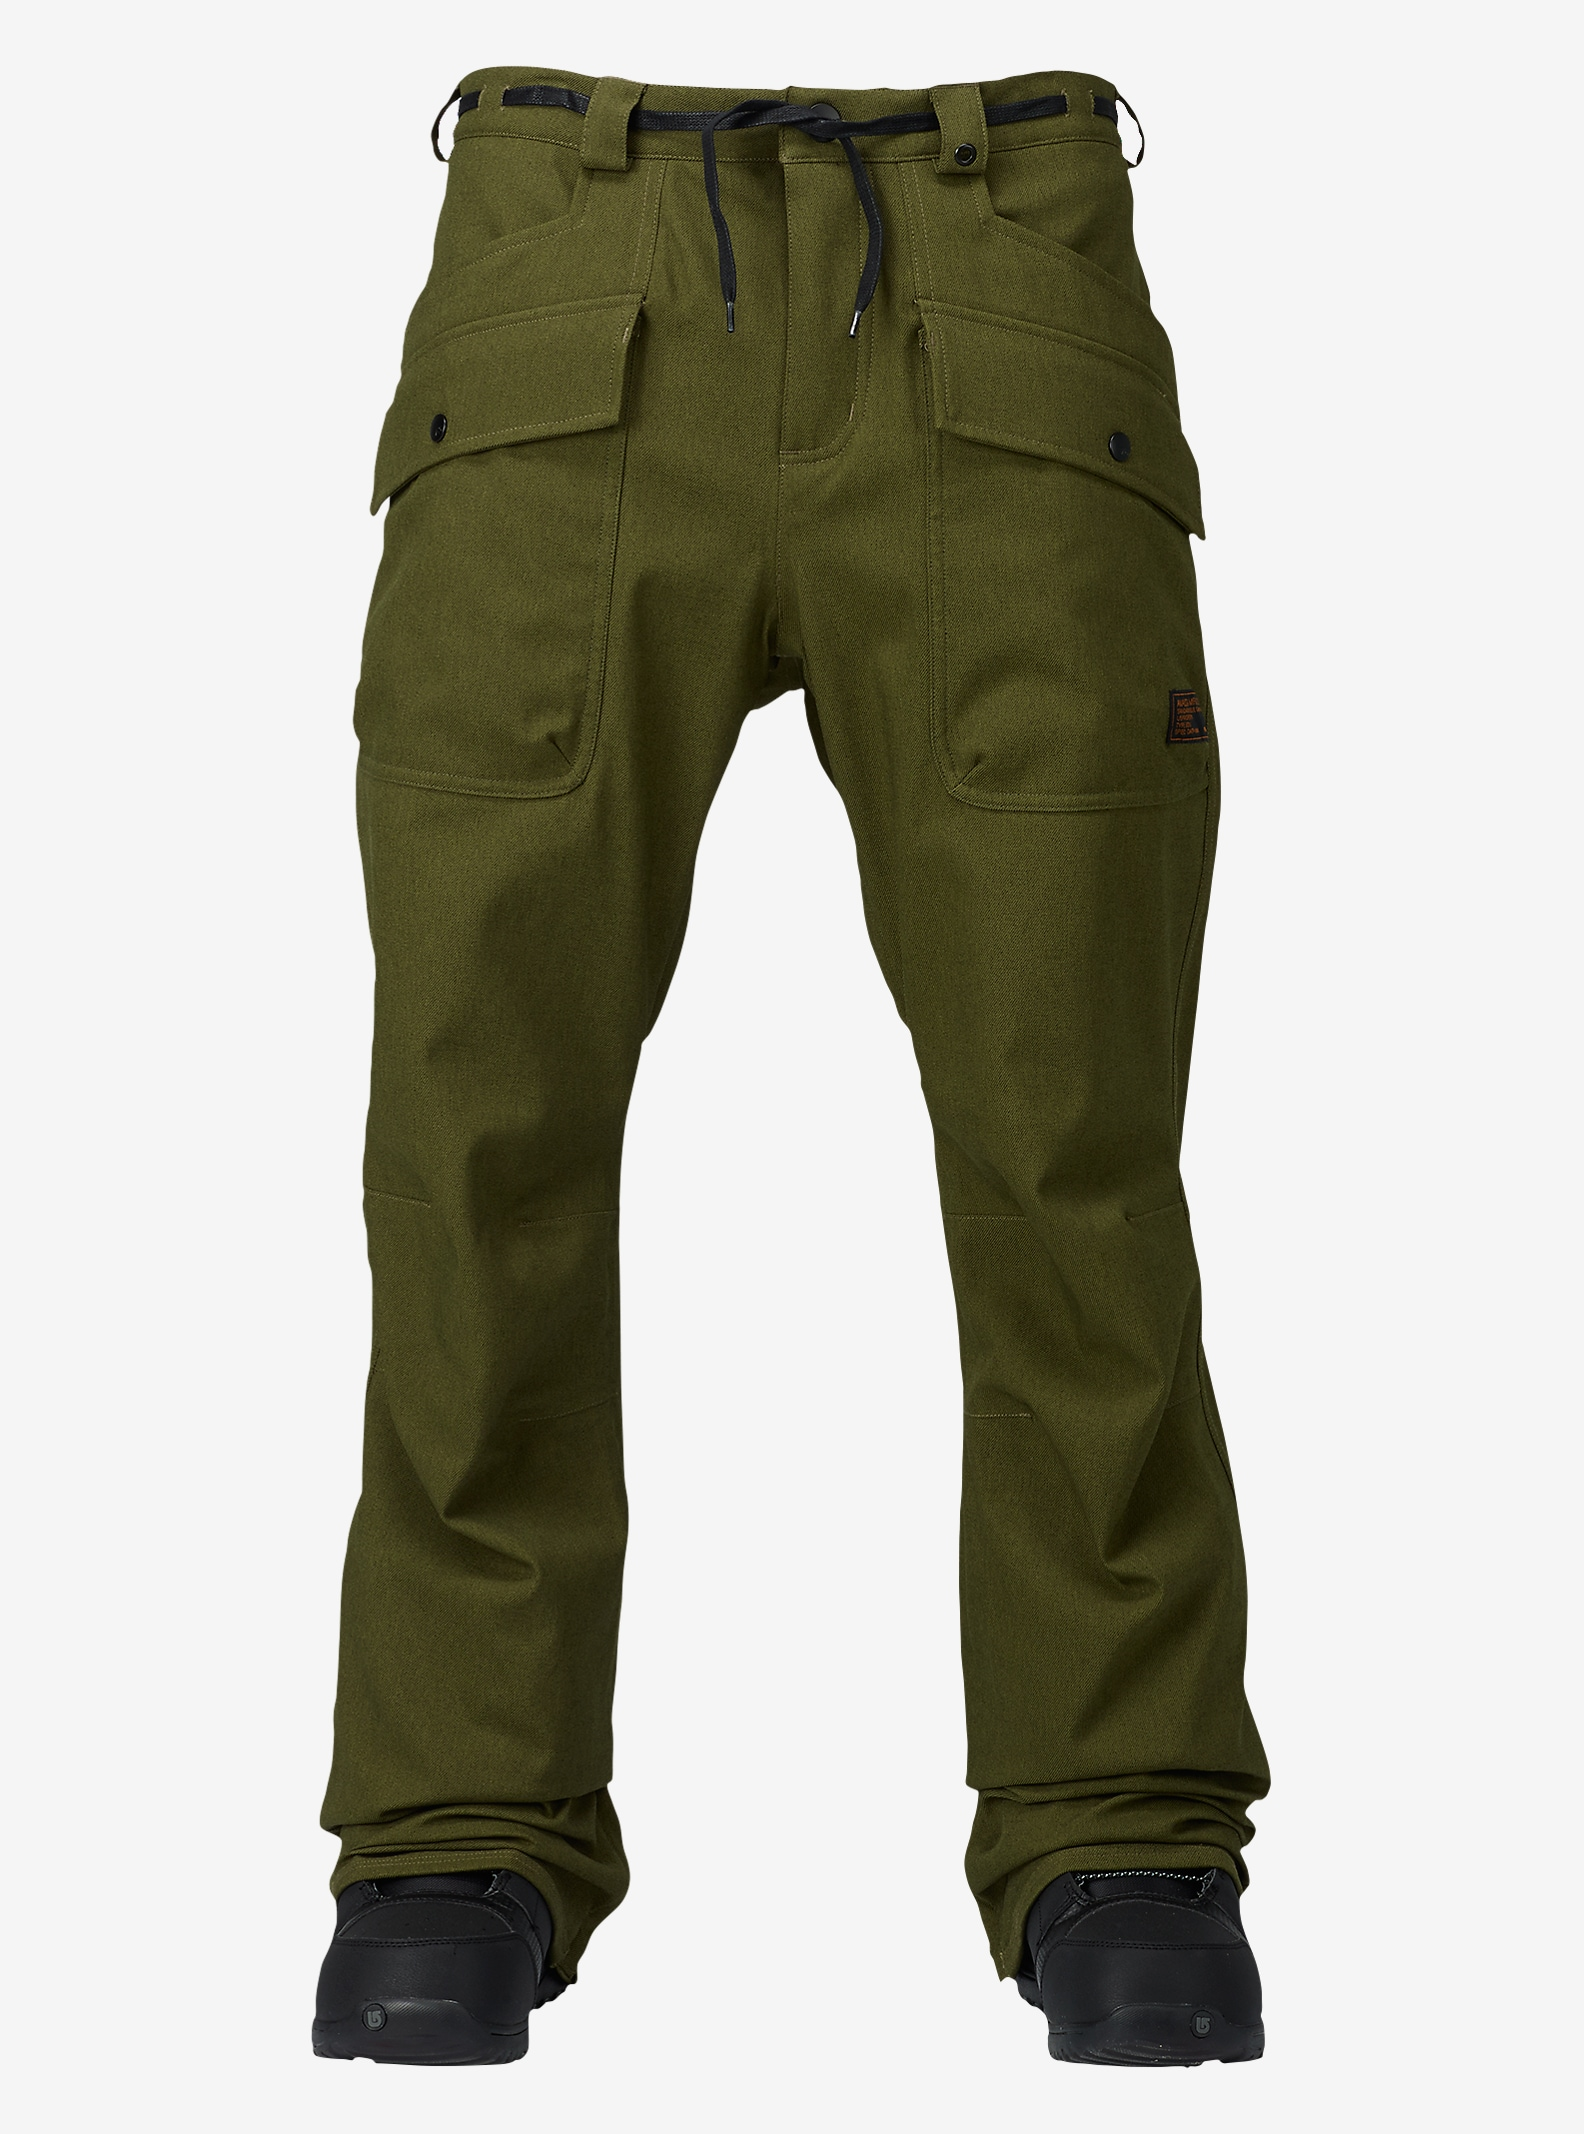 Analog Field Pant shown in Keef